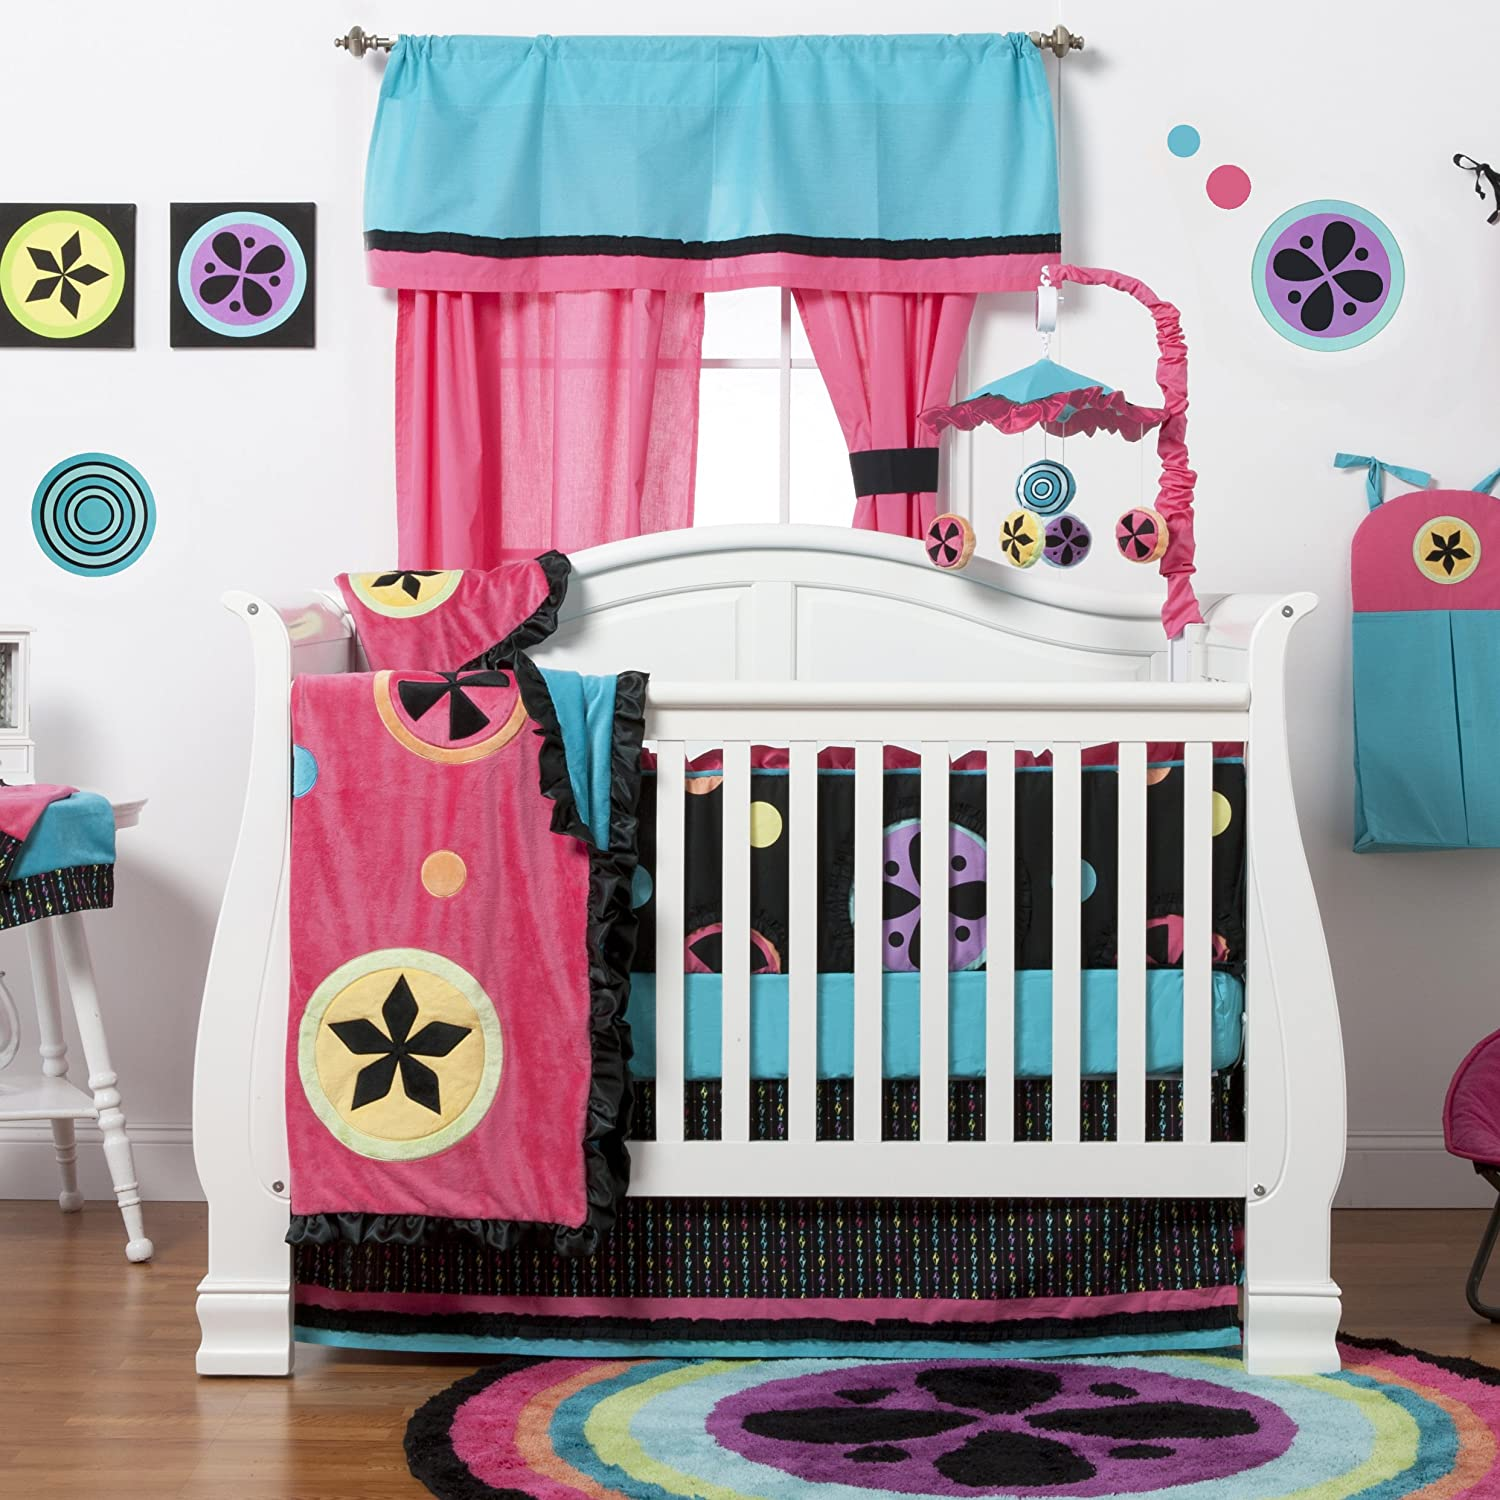 Pink and Turquoise One Grace Place 10-24026 Magical Michayla-Burp Cloth Black